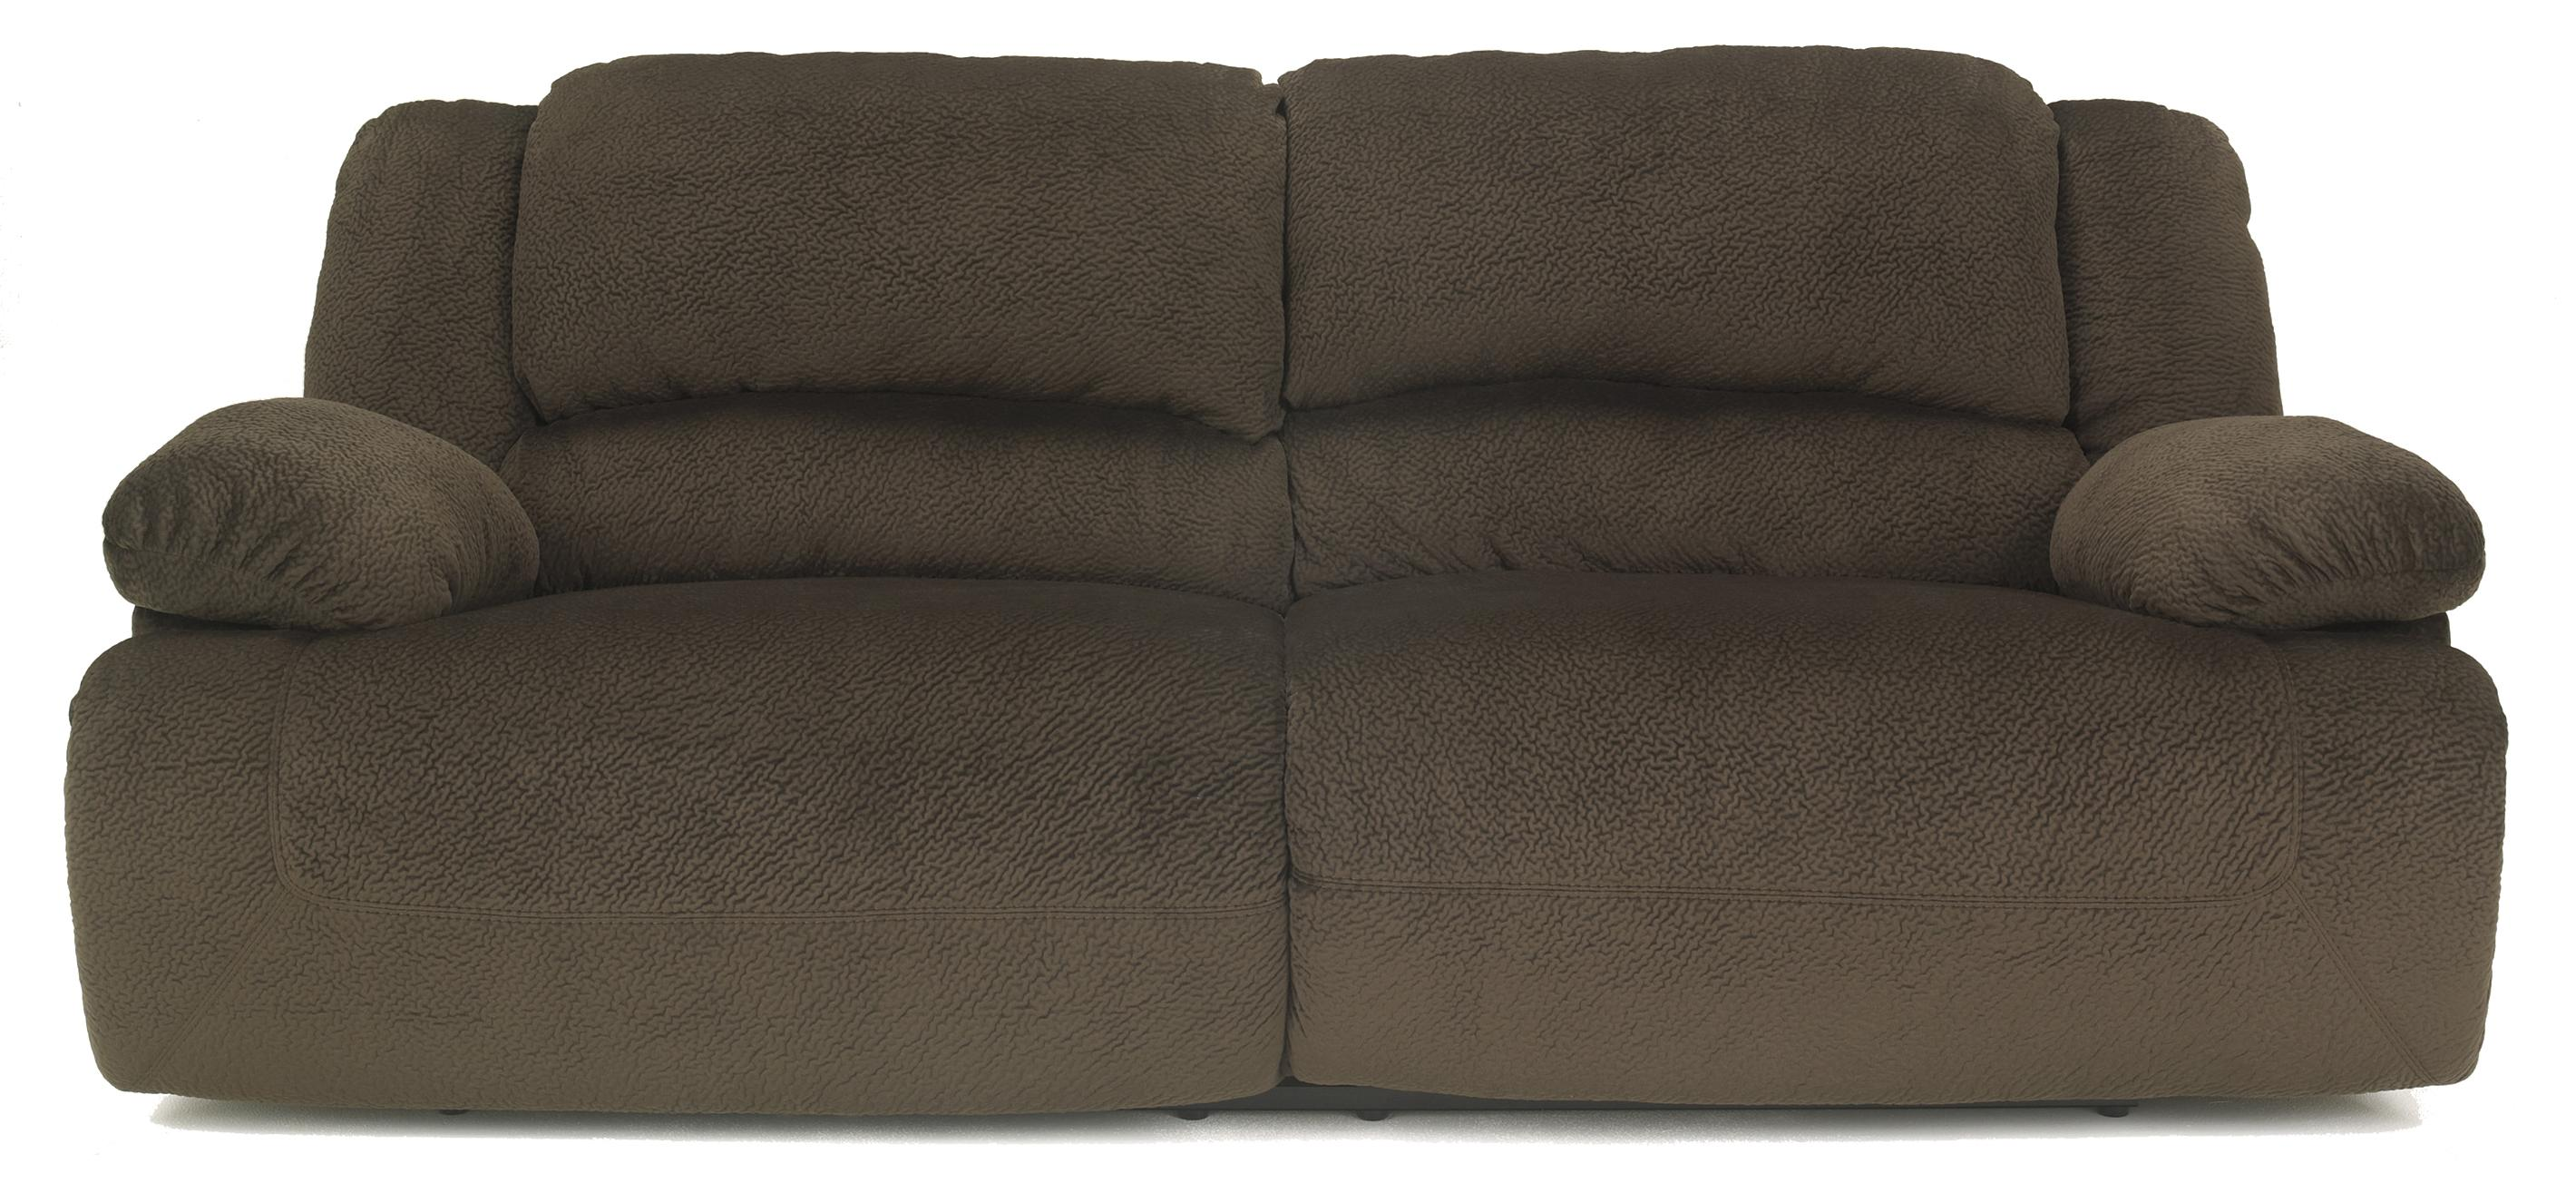 2 seat reclining sofa cover bed uk made casual contemporary by signature design